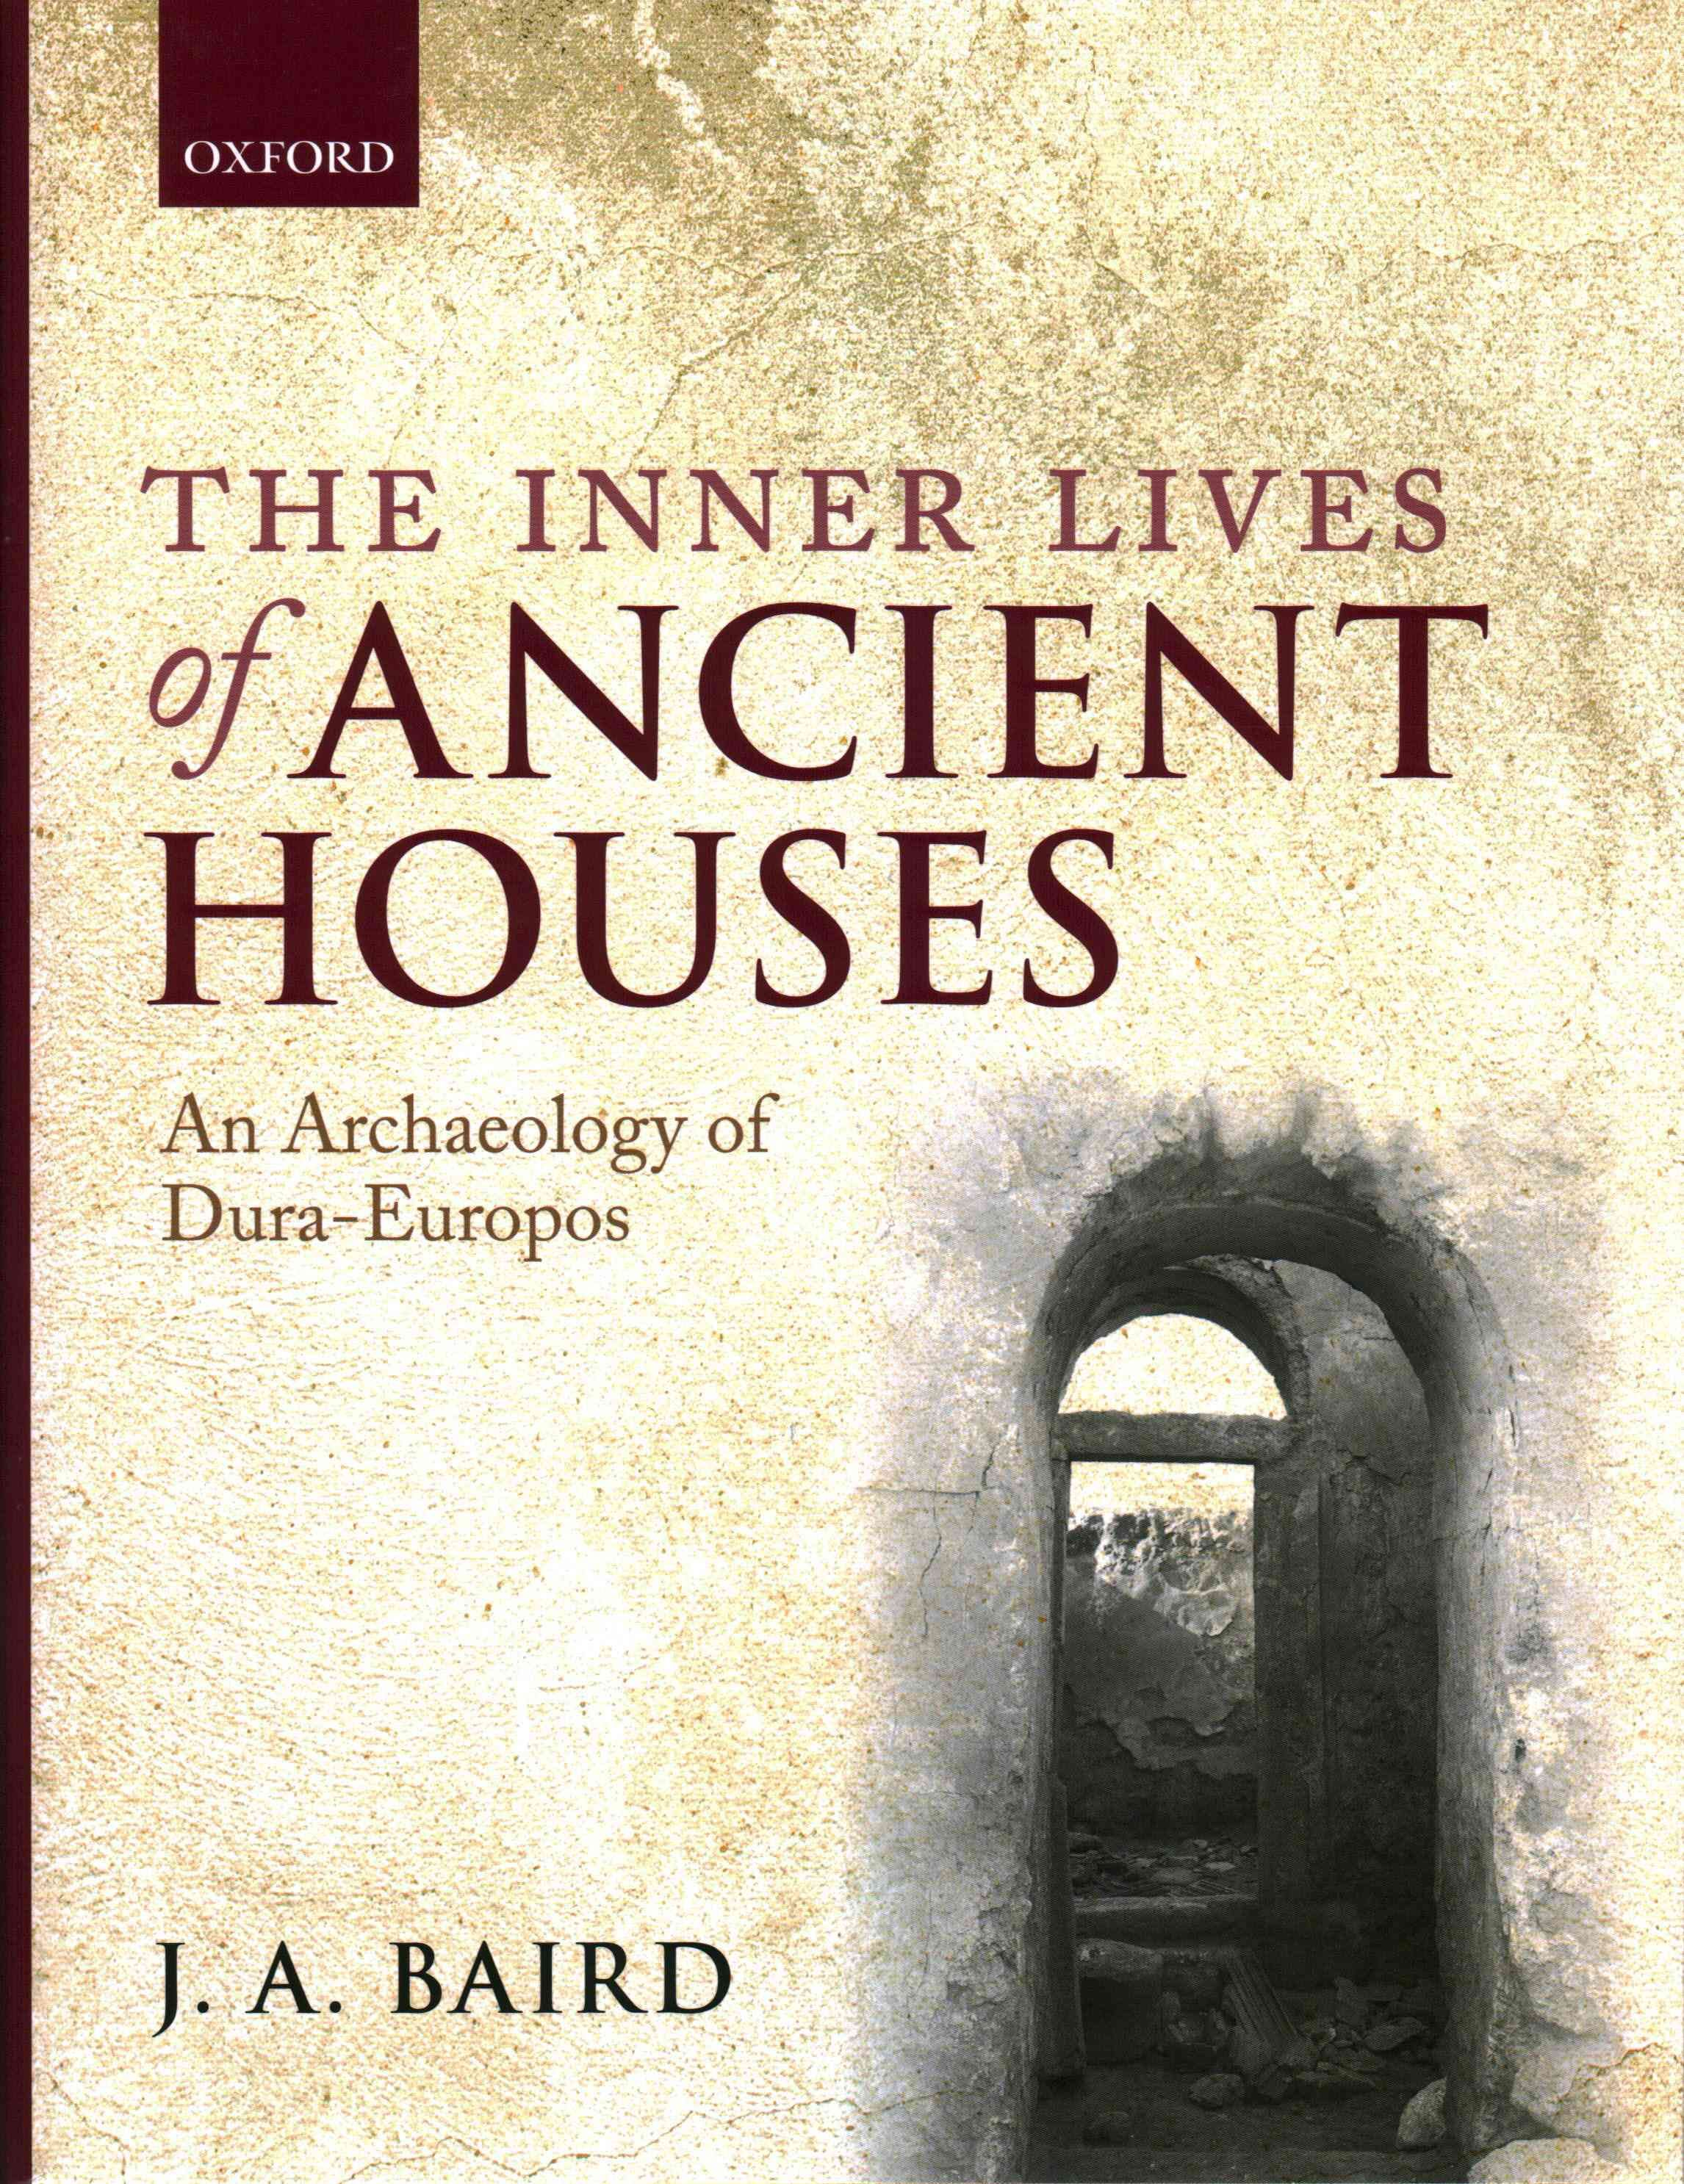 The Inner Lives of Ancient Houses: An Archaeology of Dura-Europos